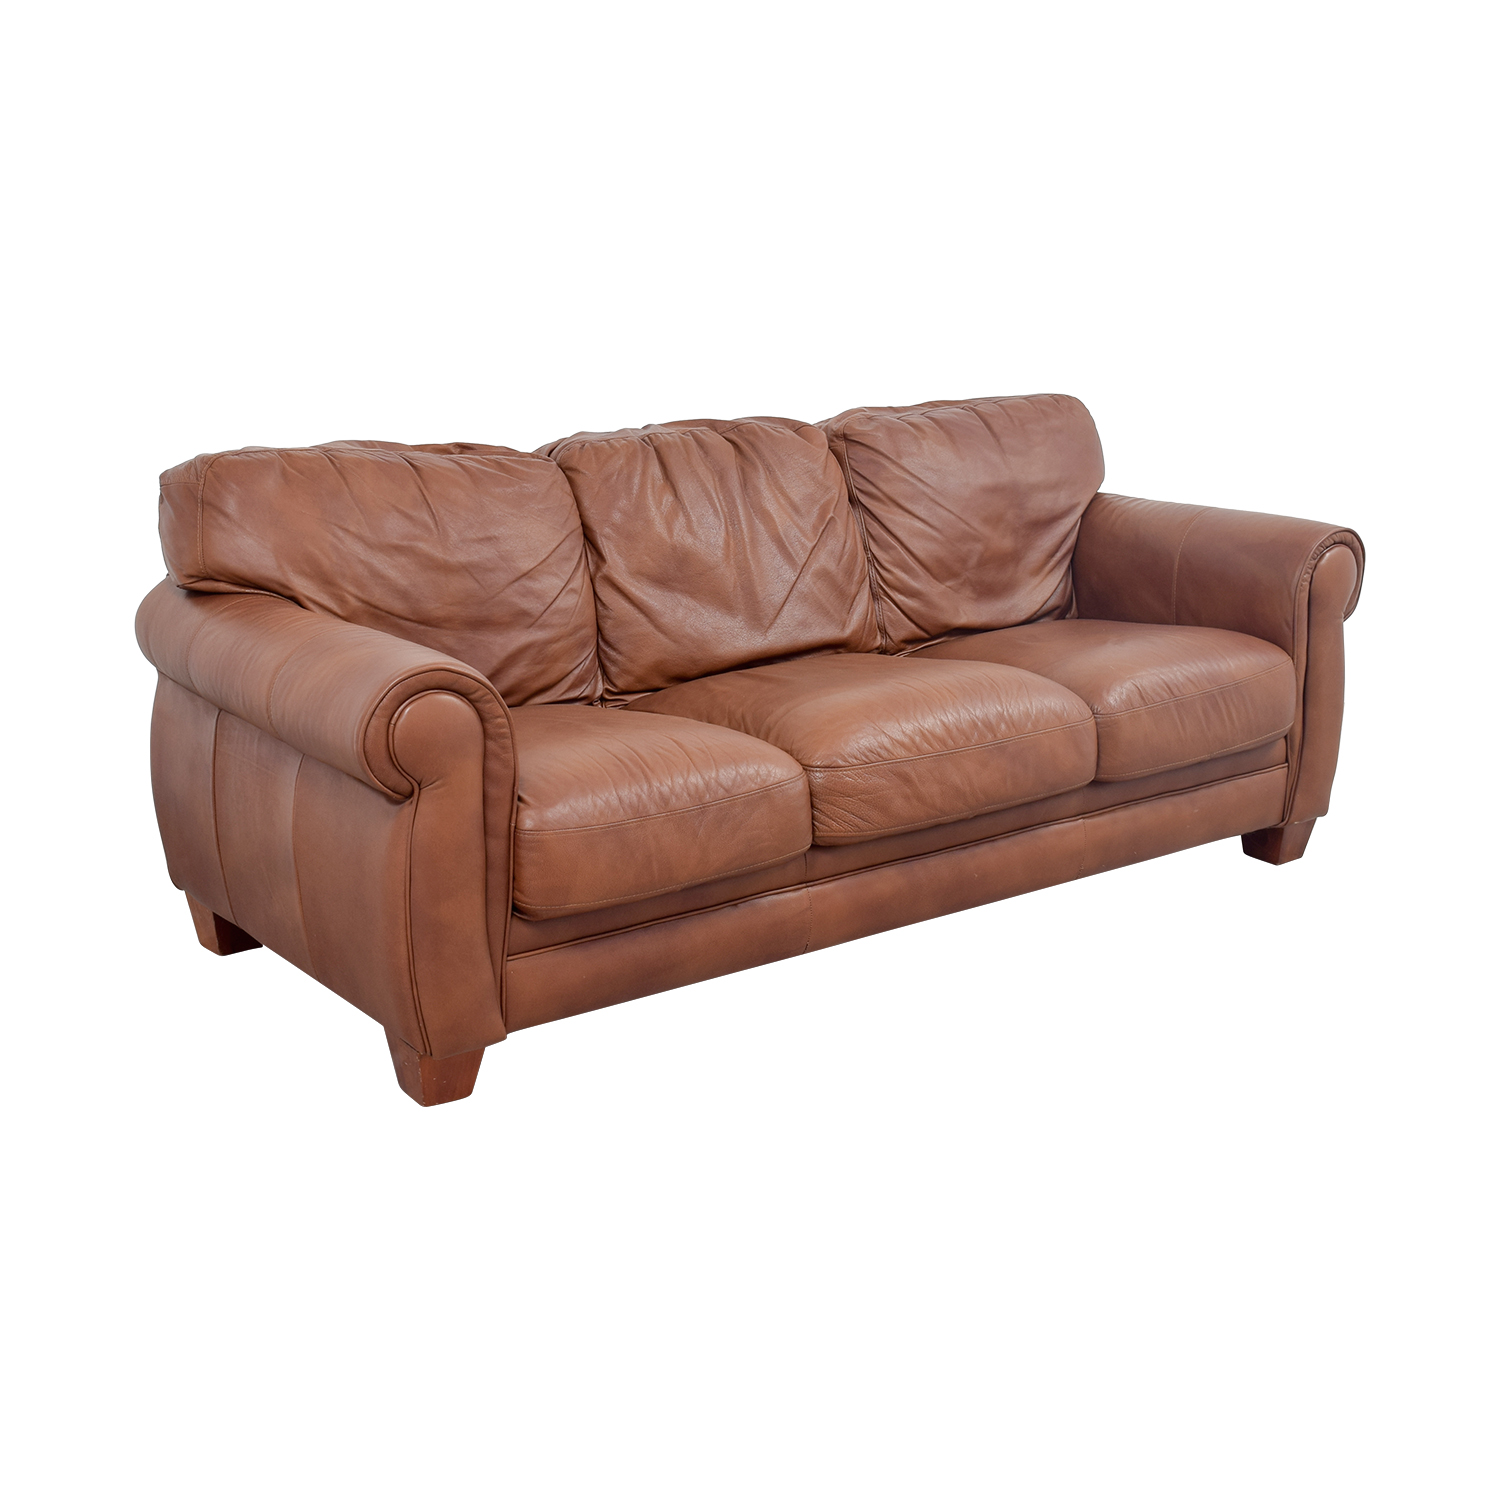 Cushions For Brown Leather Sofas 75 Off Klaussner Klaussner Brown Leather Three Cushion